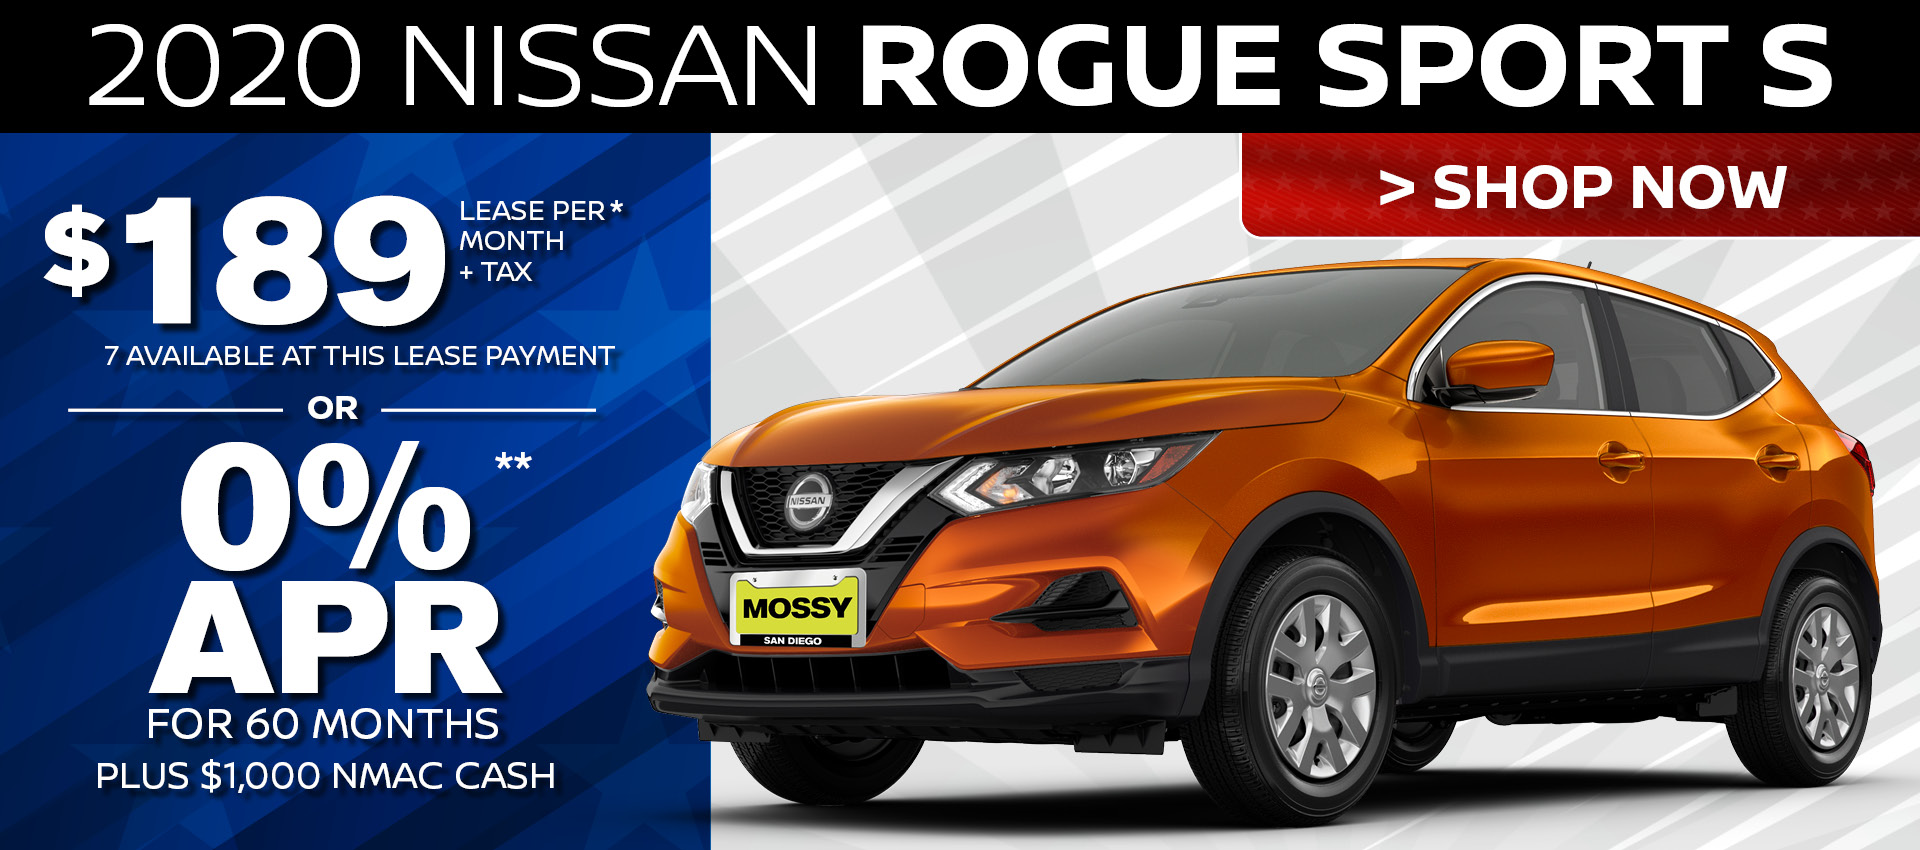 Mossy Nissan - Rogue Sport HP